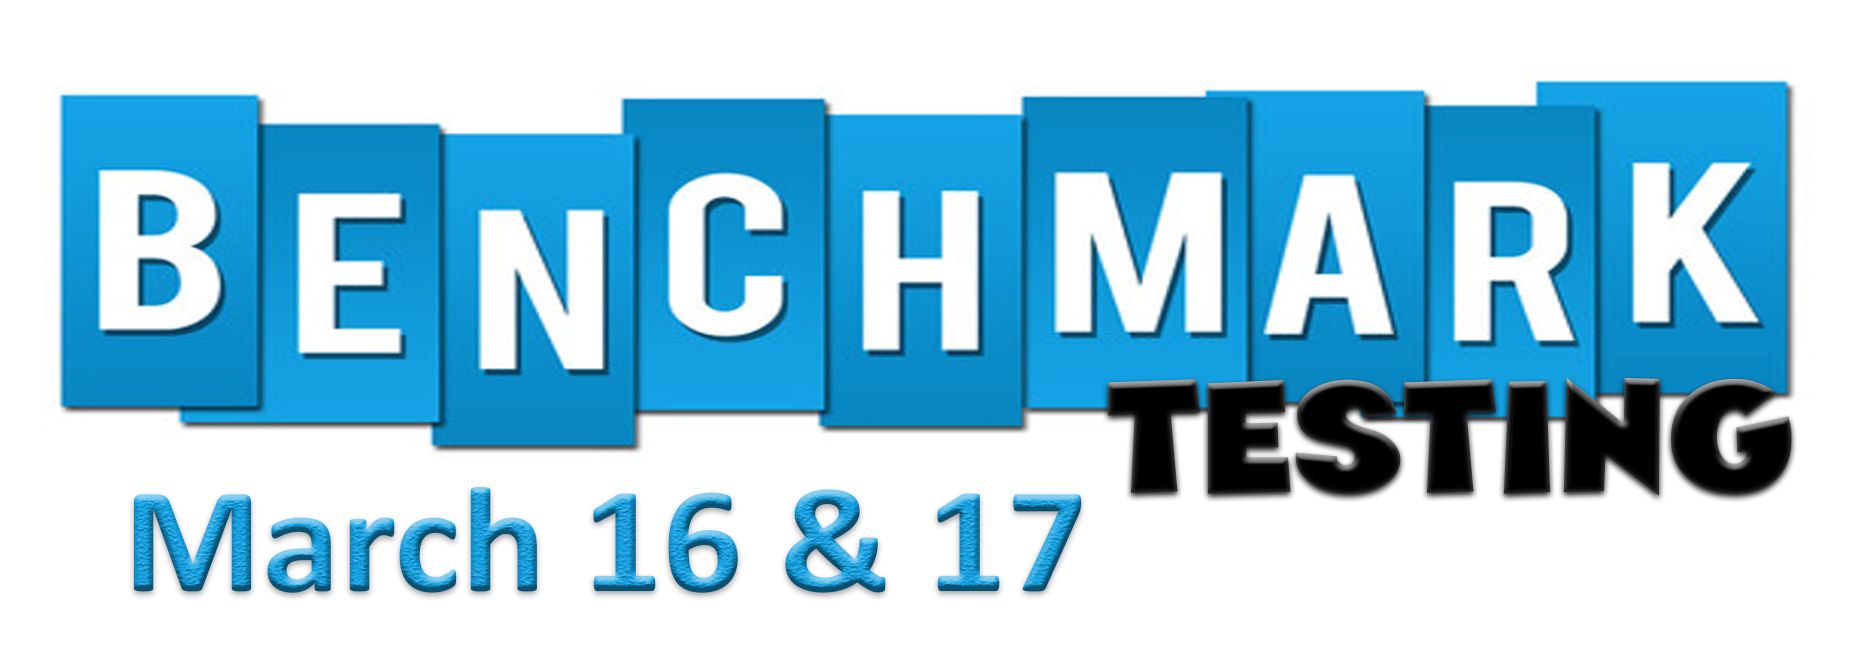 Benchmark Testing Dates March 16 & 17